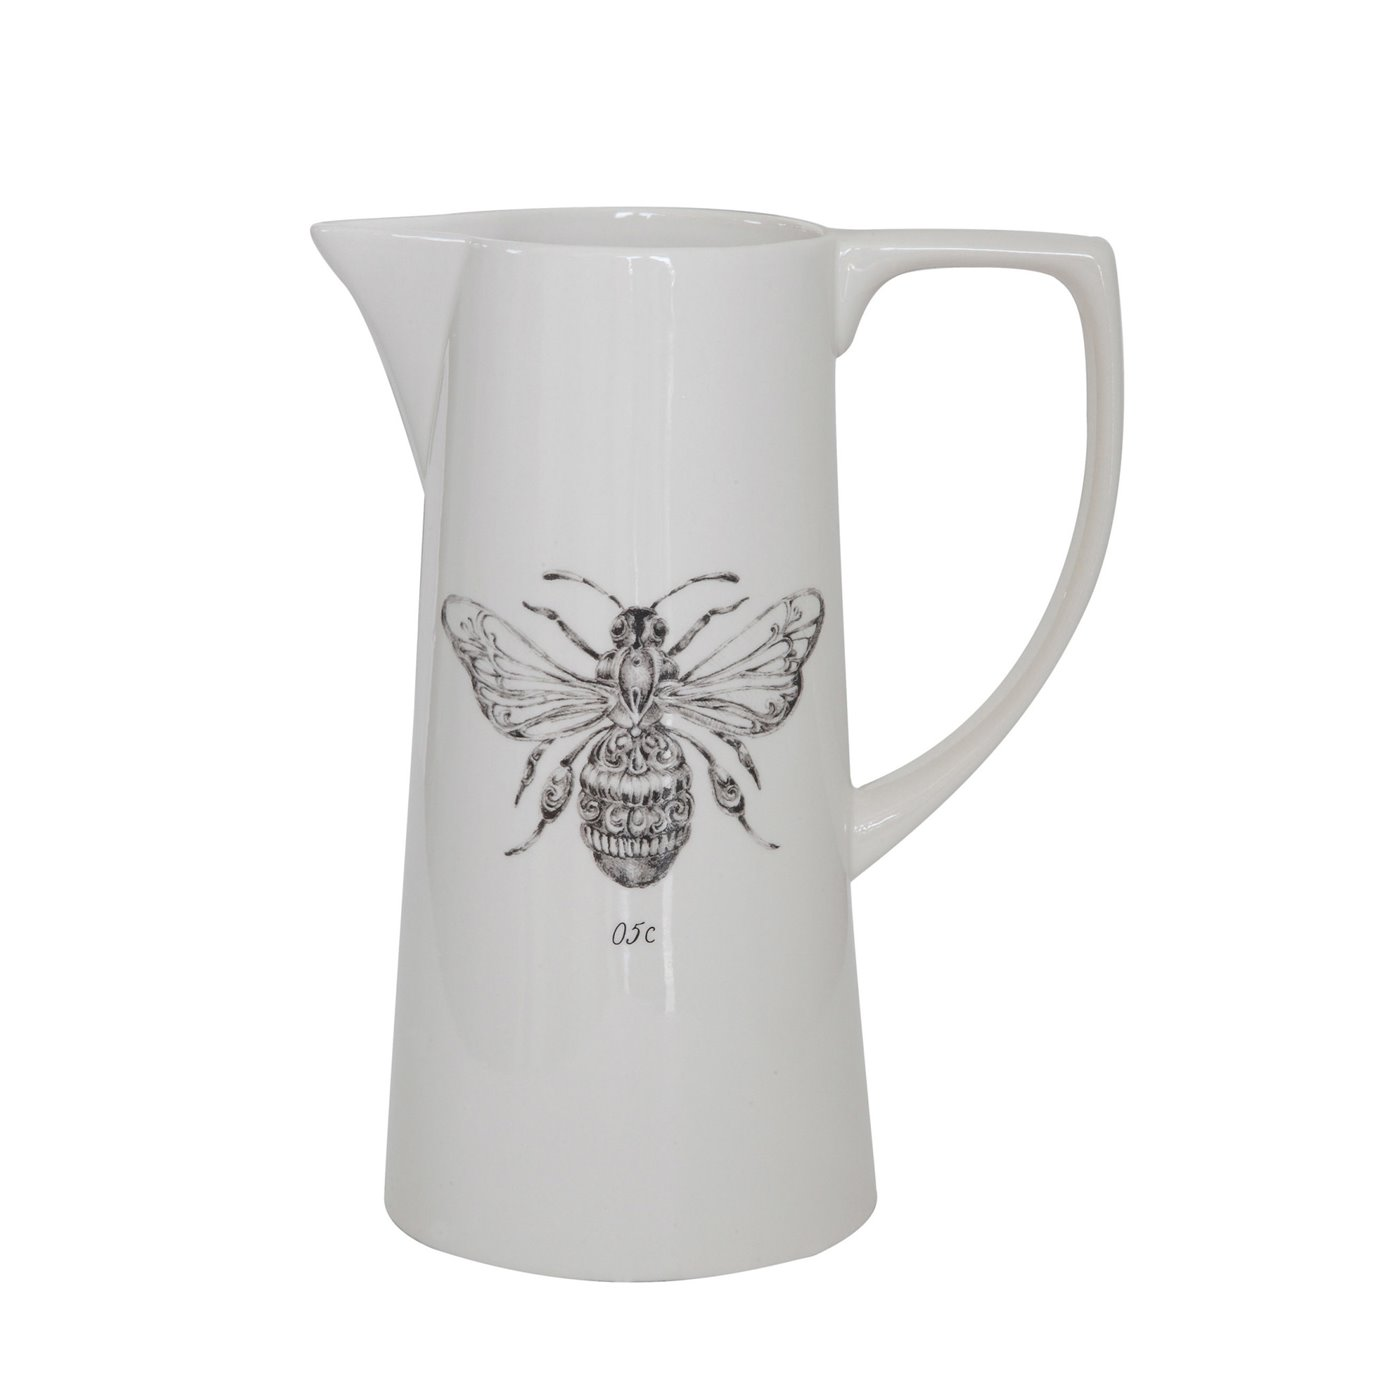 White Ceramic Pitcher with Bee Image